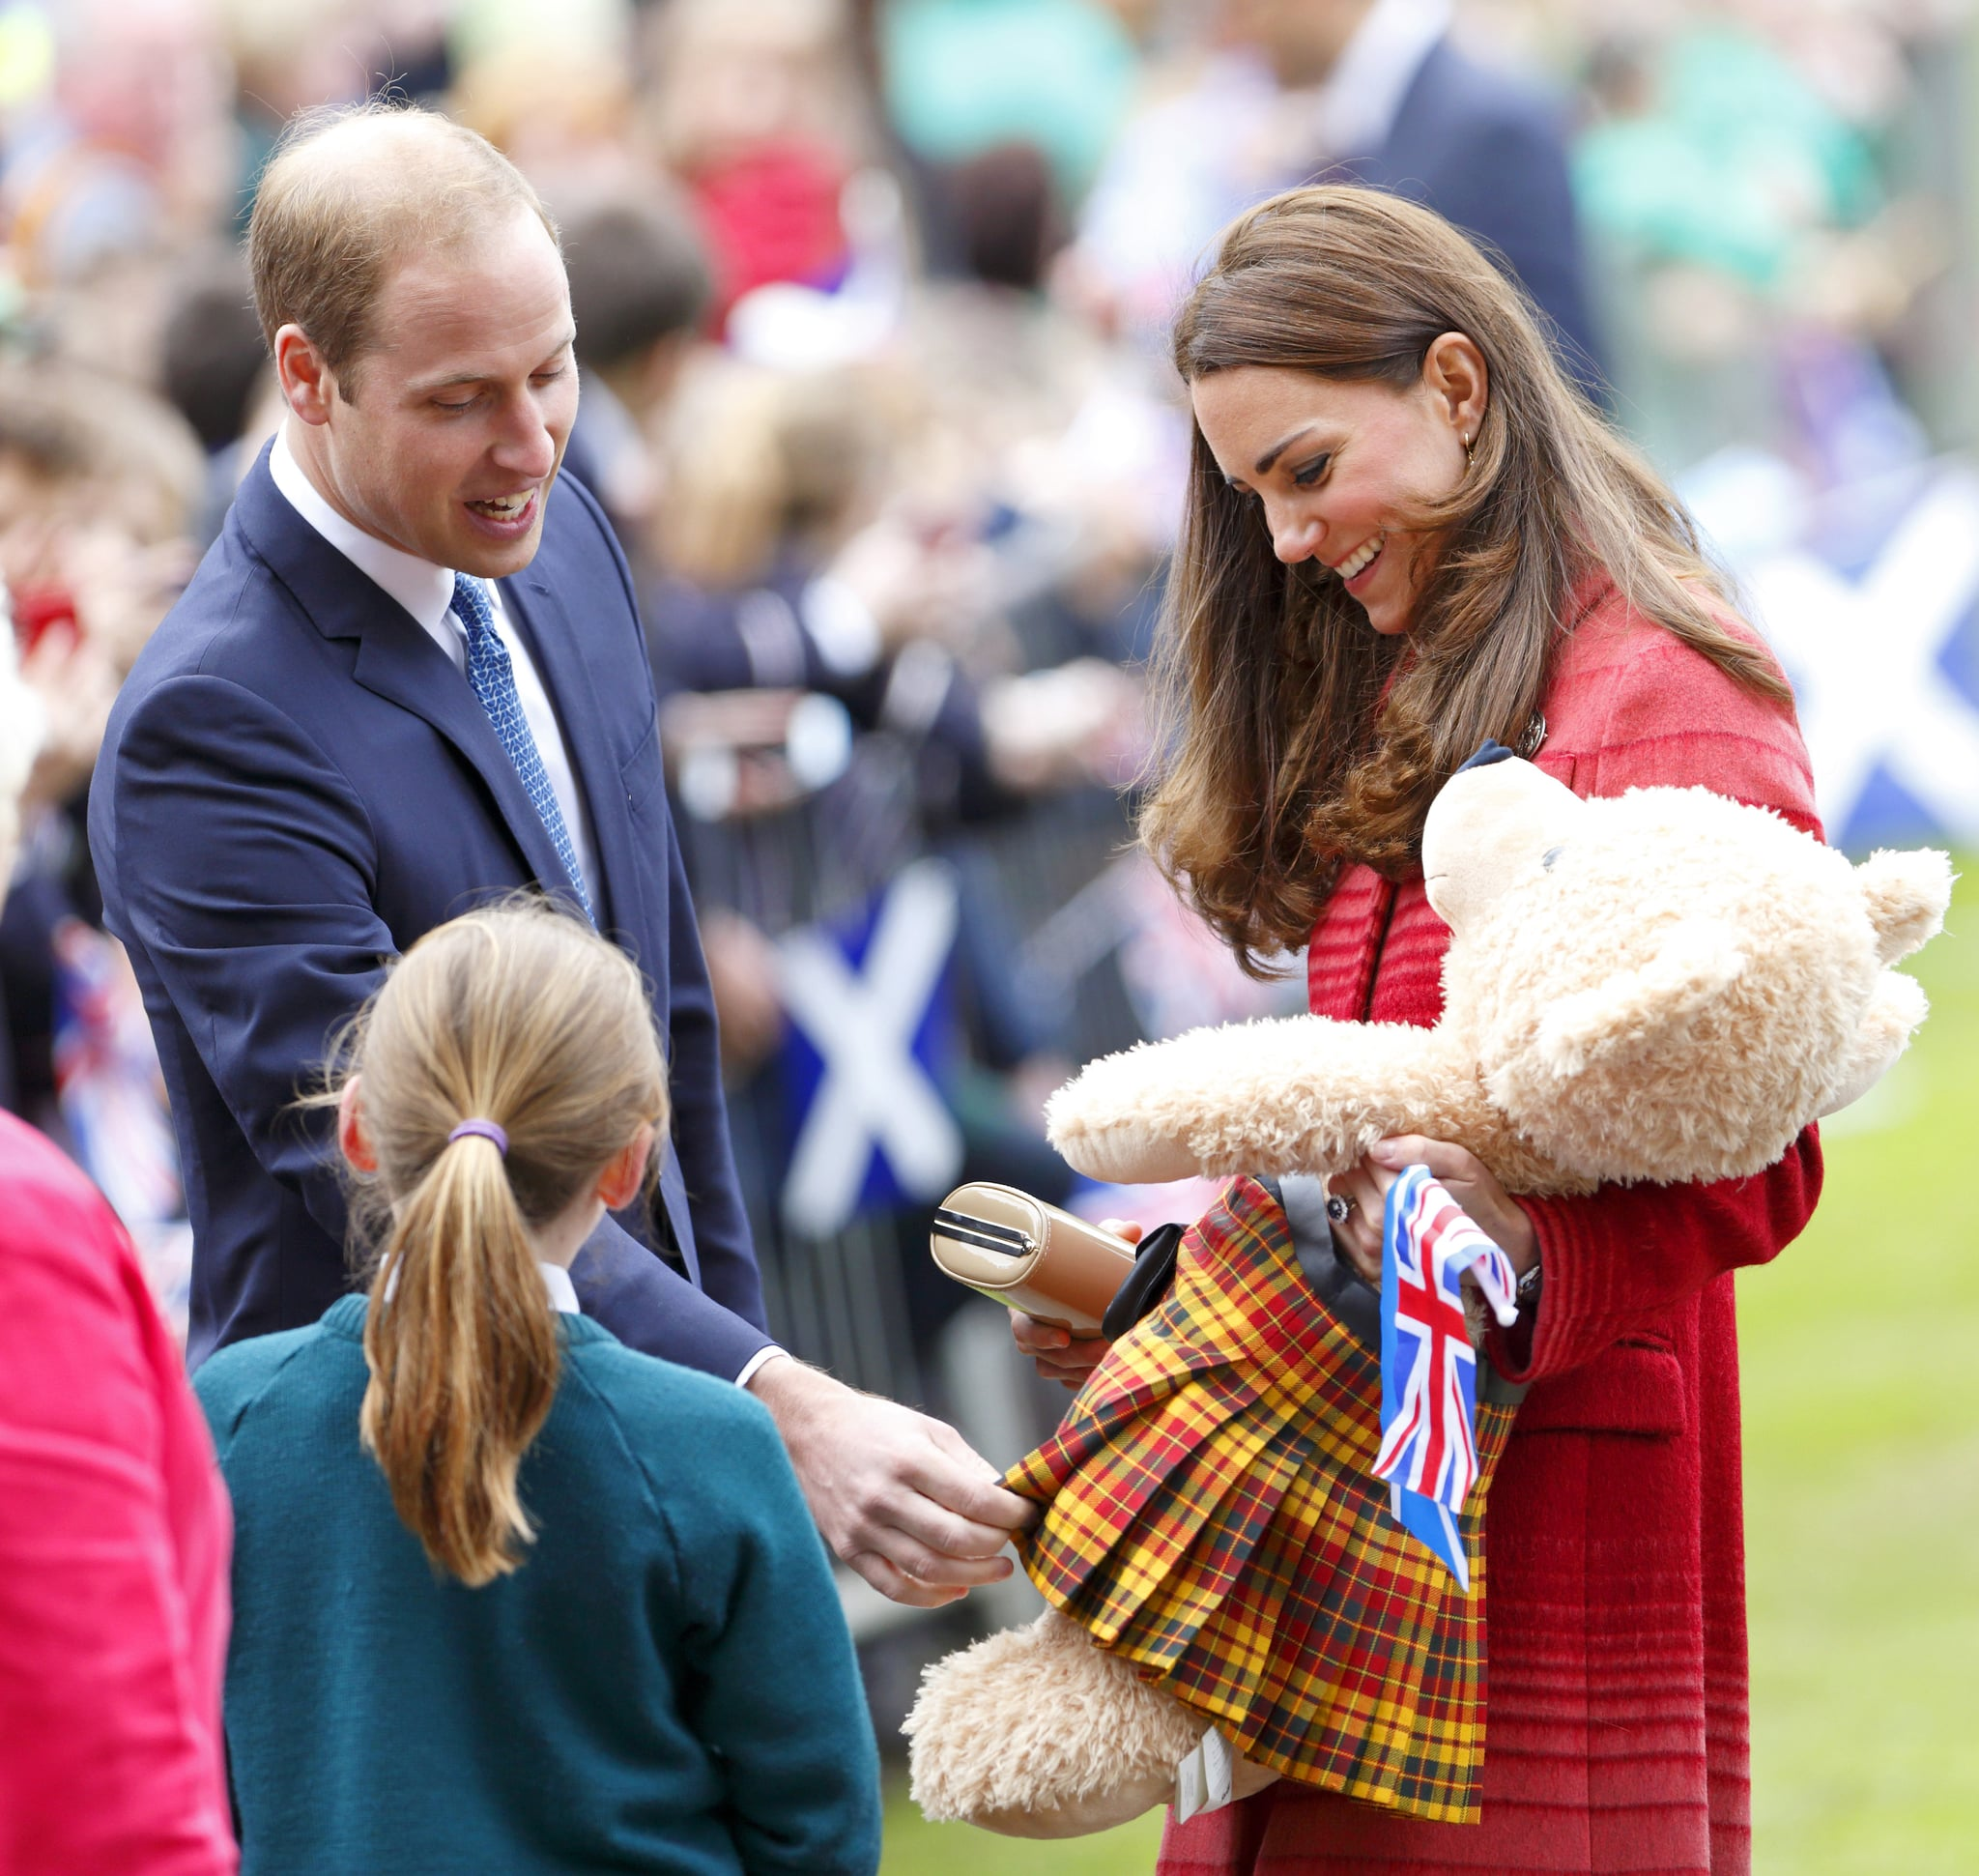 Prince William and Kate accepted gifts during a 2014 visit to Scotland.